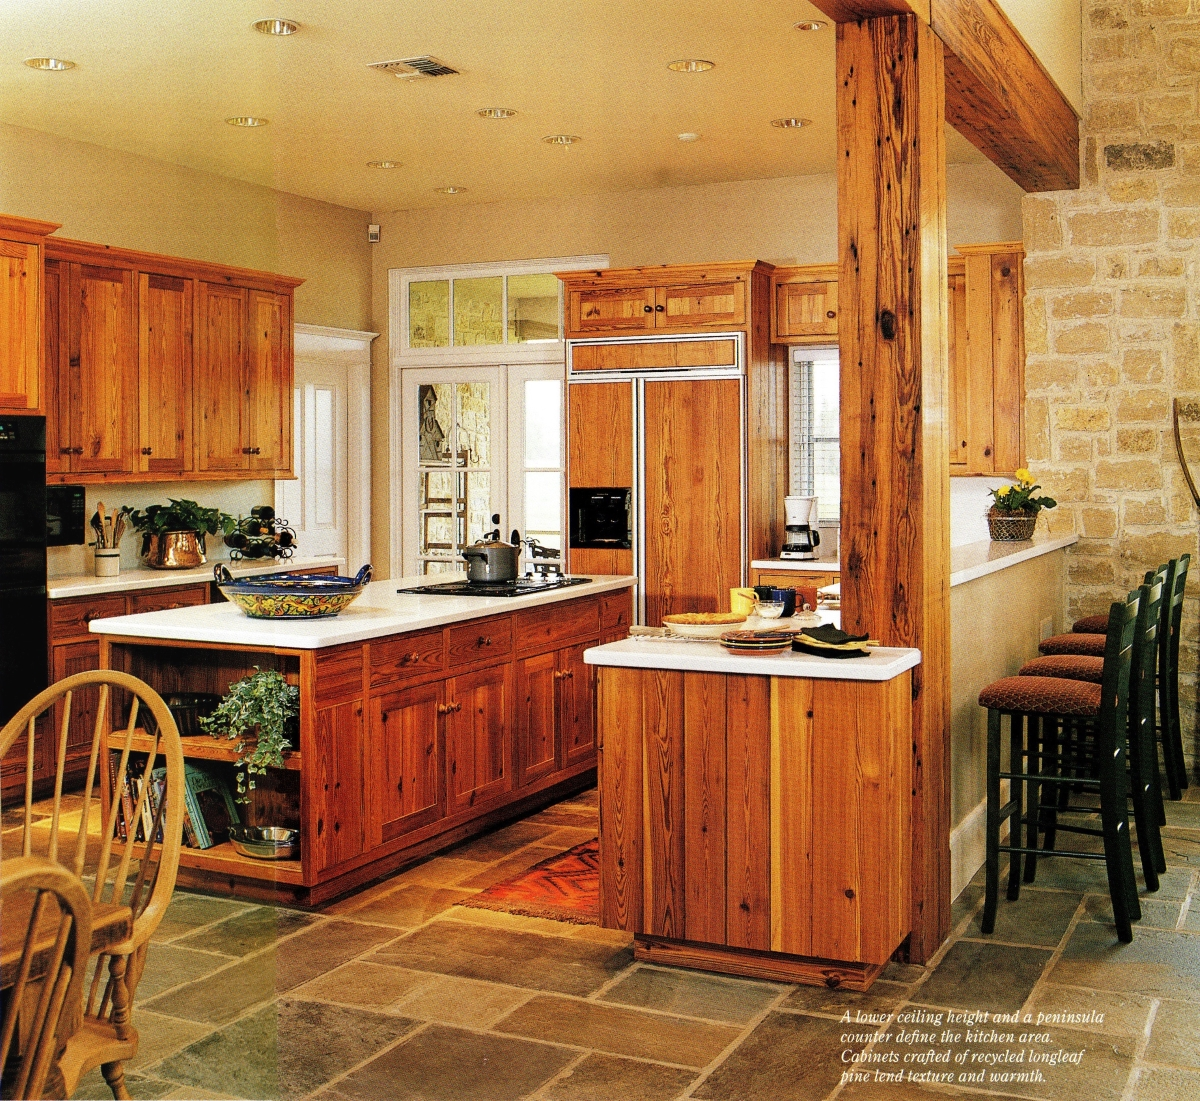 Texas Hill Country Living, Texas Hill Country Design, Texas Hill Country Home, Texas Ranch Home Design Ideas, Mike McKool Ranch, Texas Home Architect, Texas Hill Country Homes, Texas Hill Country Living, Texas Hill Country Design, Texas Hill Country Home, Texas Ranch Home Design Ideas, Mike McKool Ranch, Texas Home Architect, Texas Hill Country Family Room, Texas Ranch Kitchen, Texas Hill Country Kitchen, Ellis County Texas Kitchen, Ranch Kitchen, Ranch Dining Room, Texas Dining Room, Dallas Architect